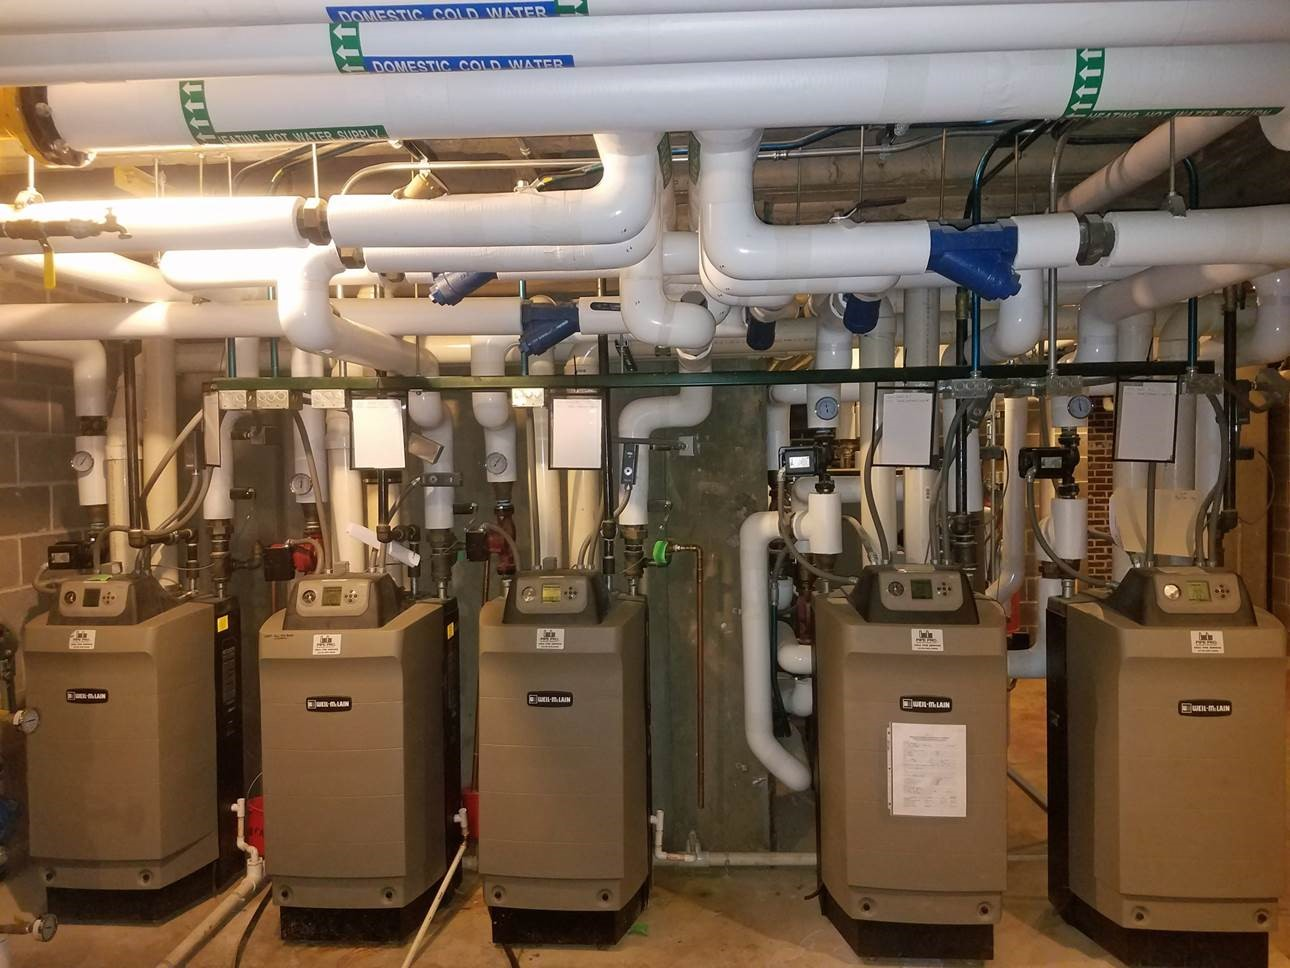 High Efficiency Boilers at Iowa College Campus | Commercial ...